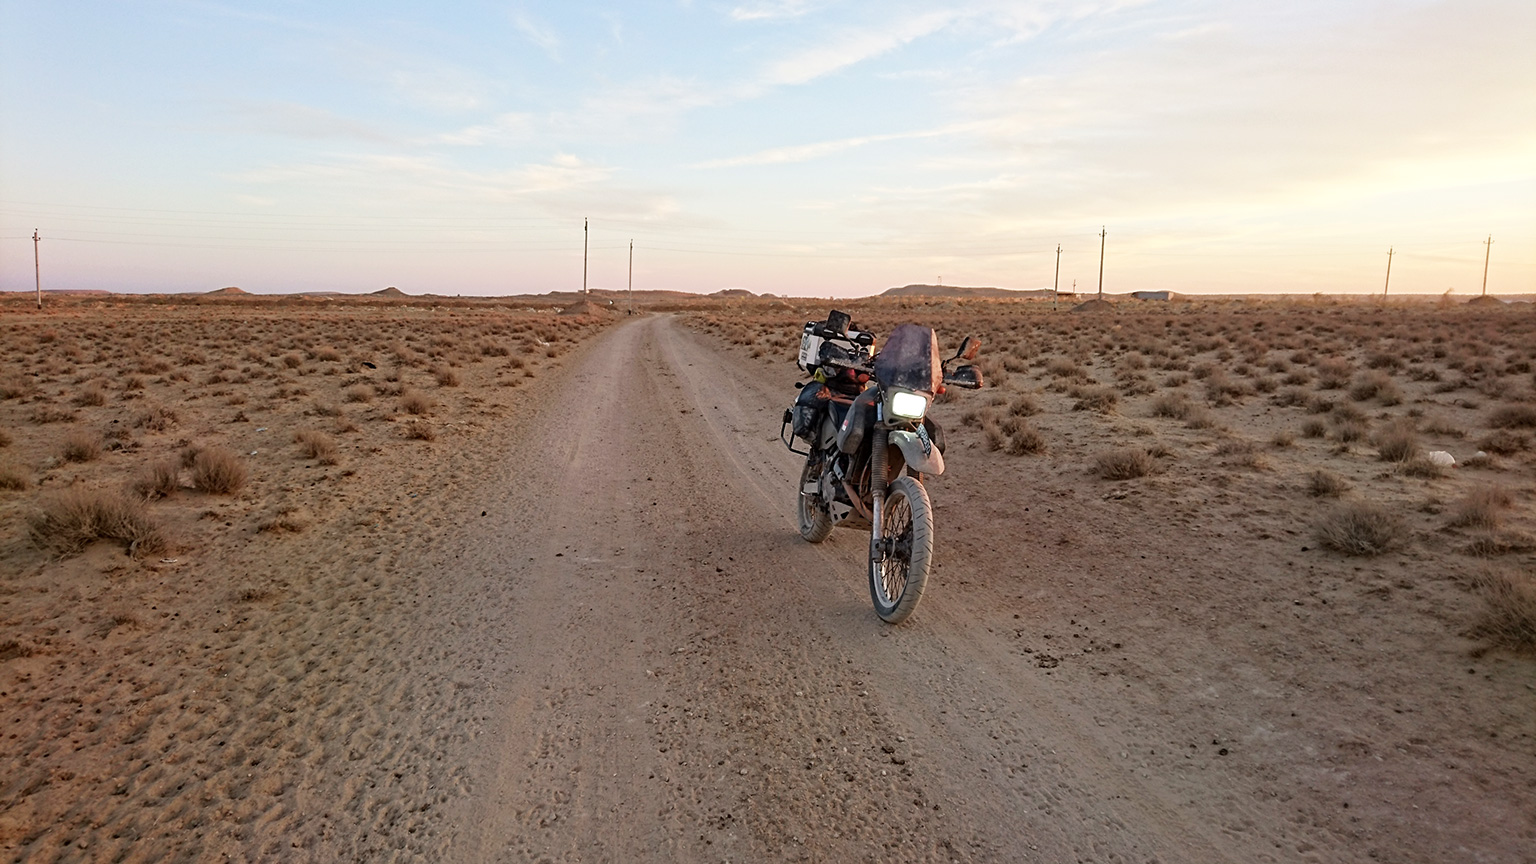 Turkmenistan Karakum desert Motorcycle Adventure